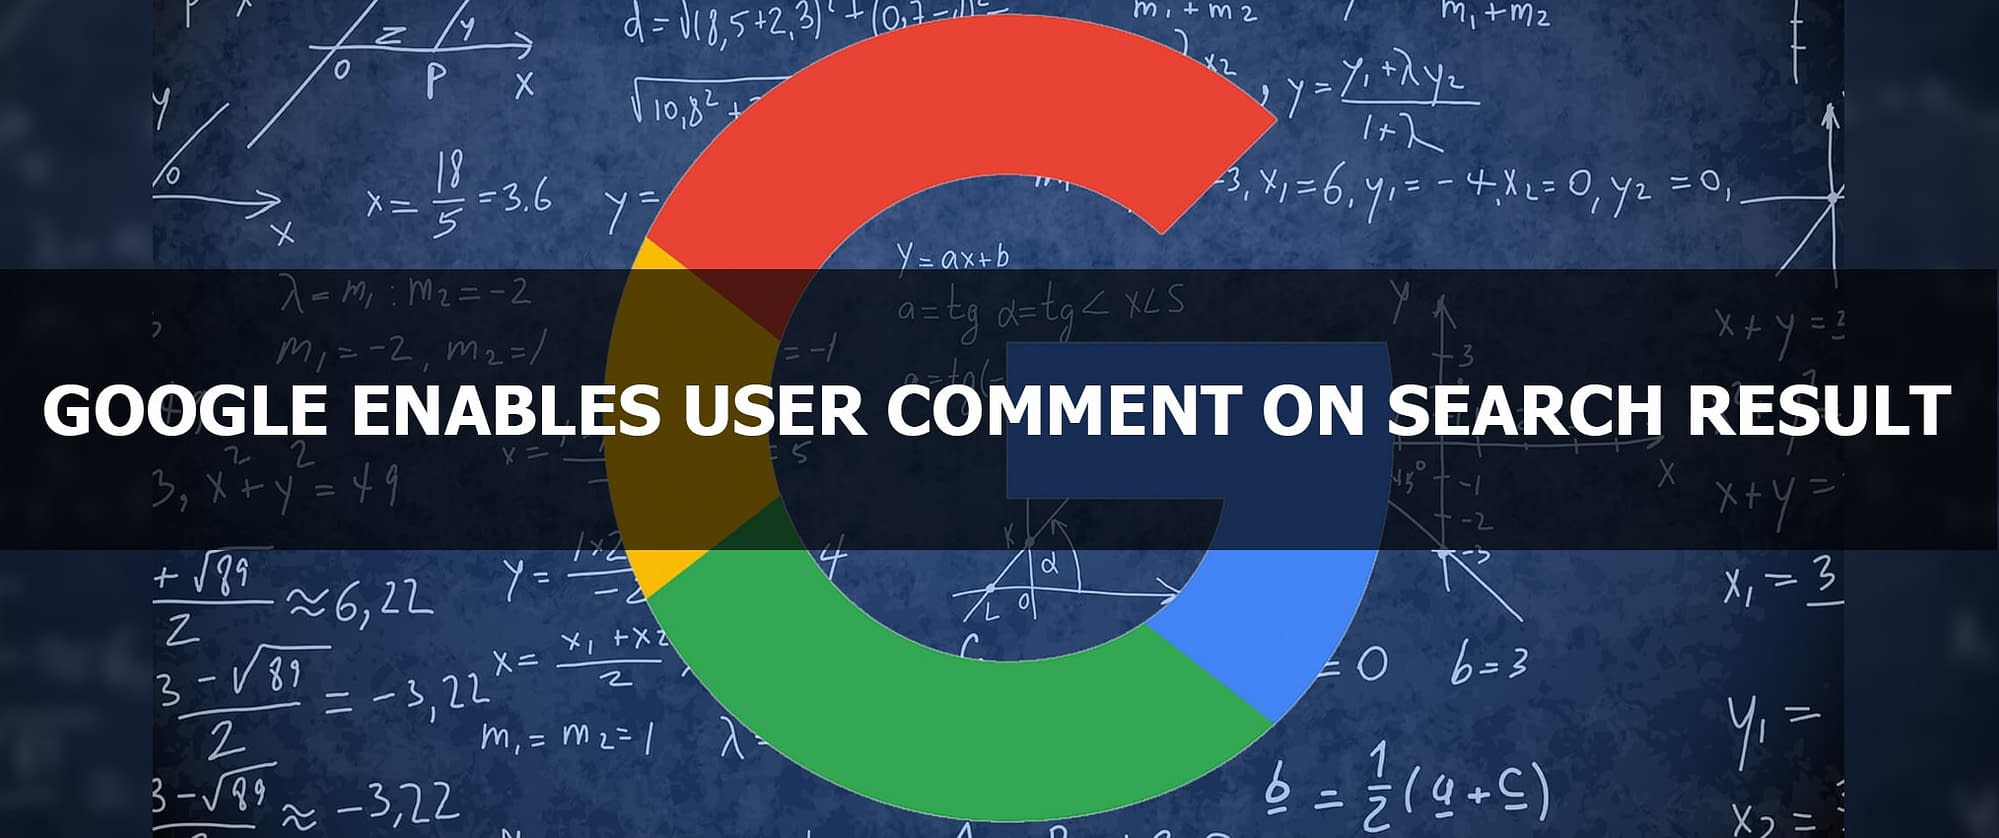 Google Enables User Comment on Search Result